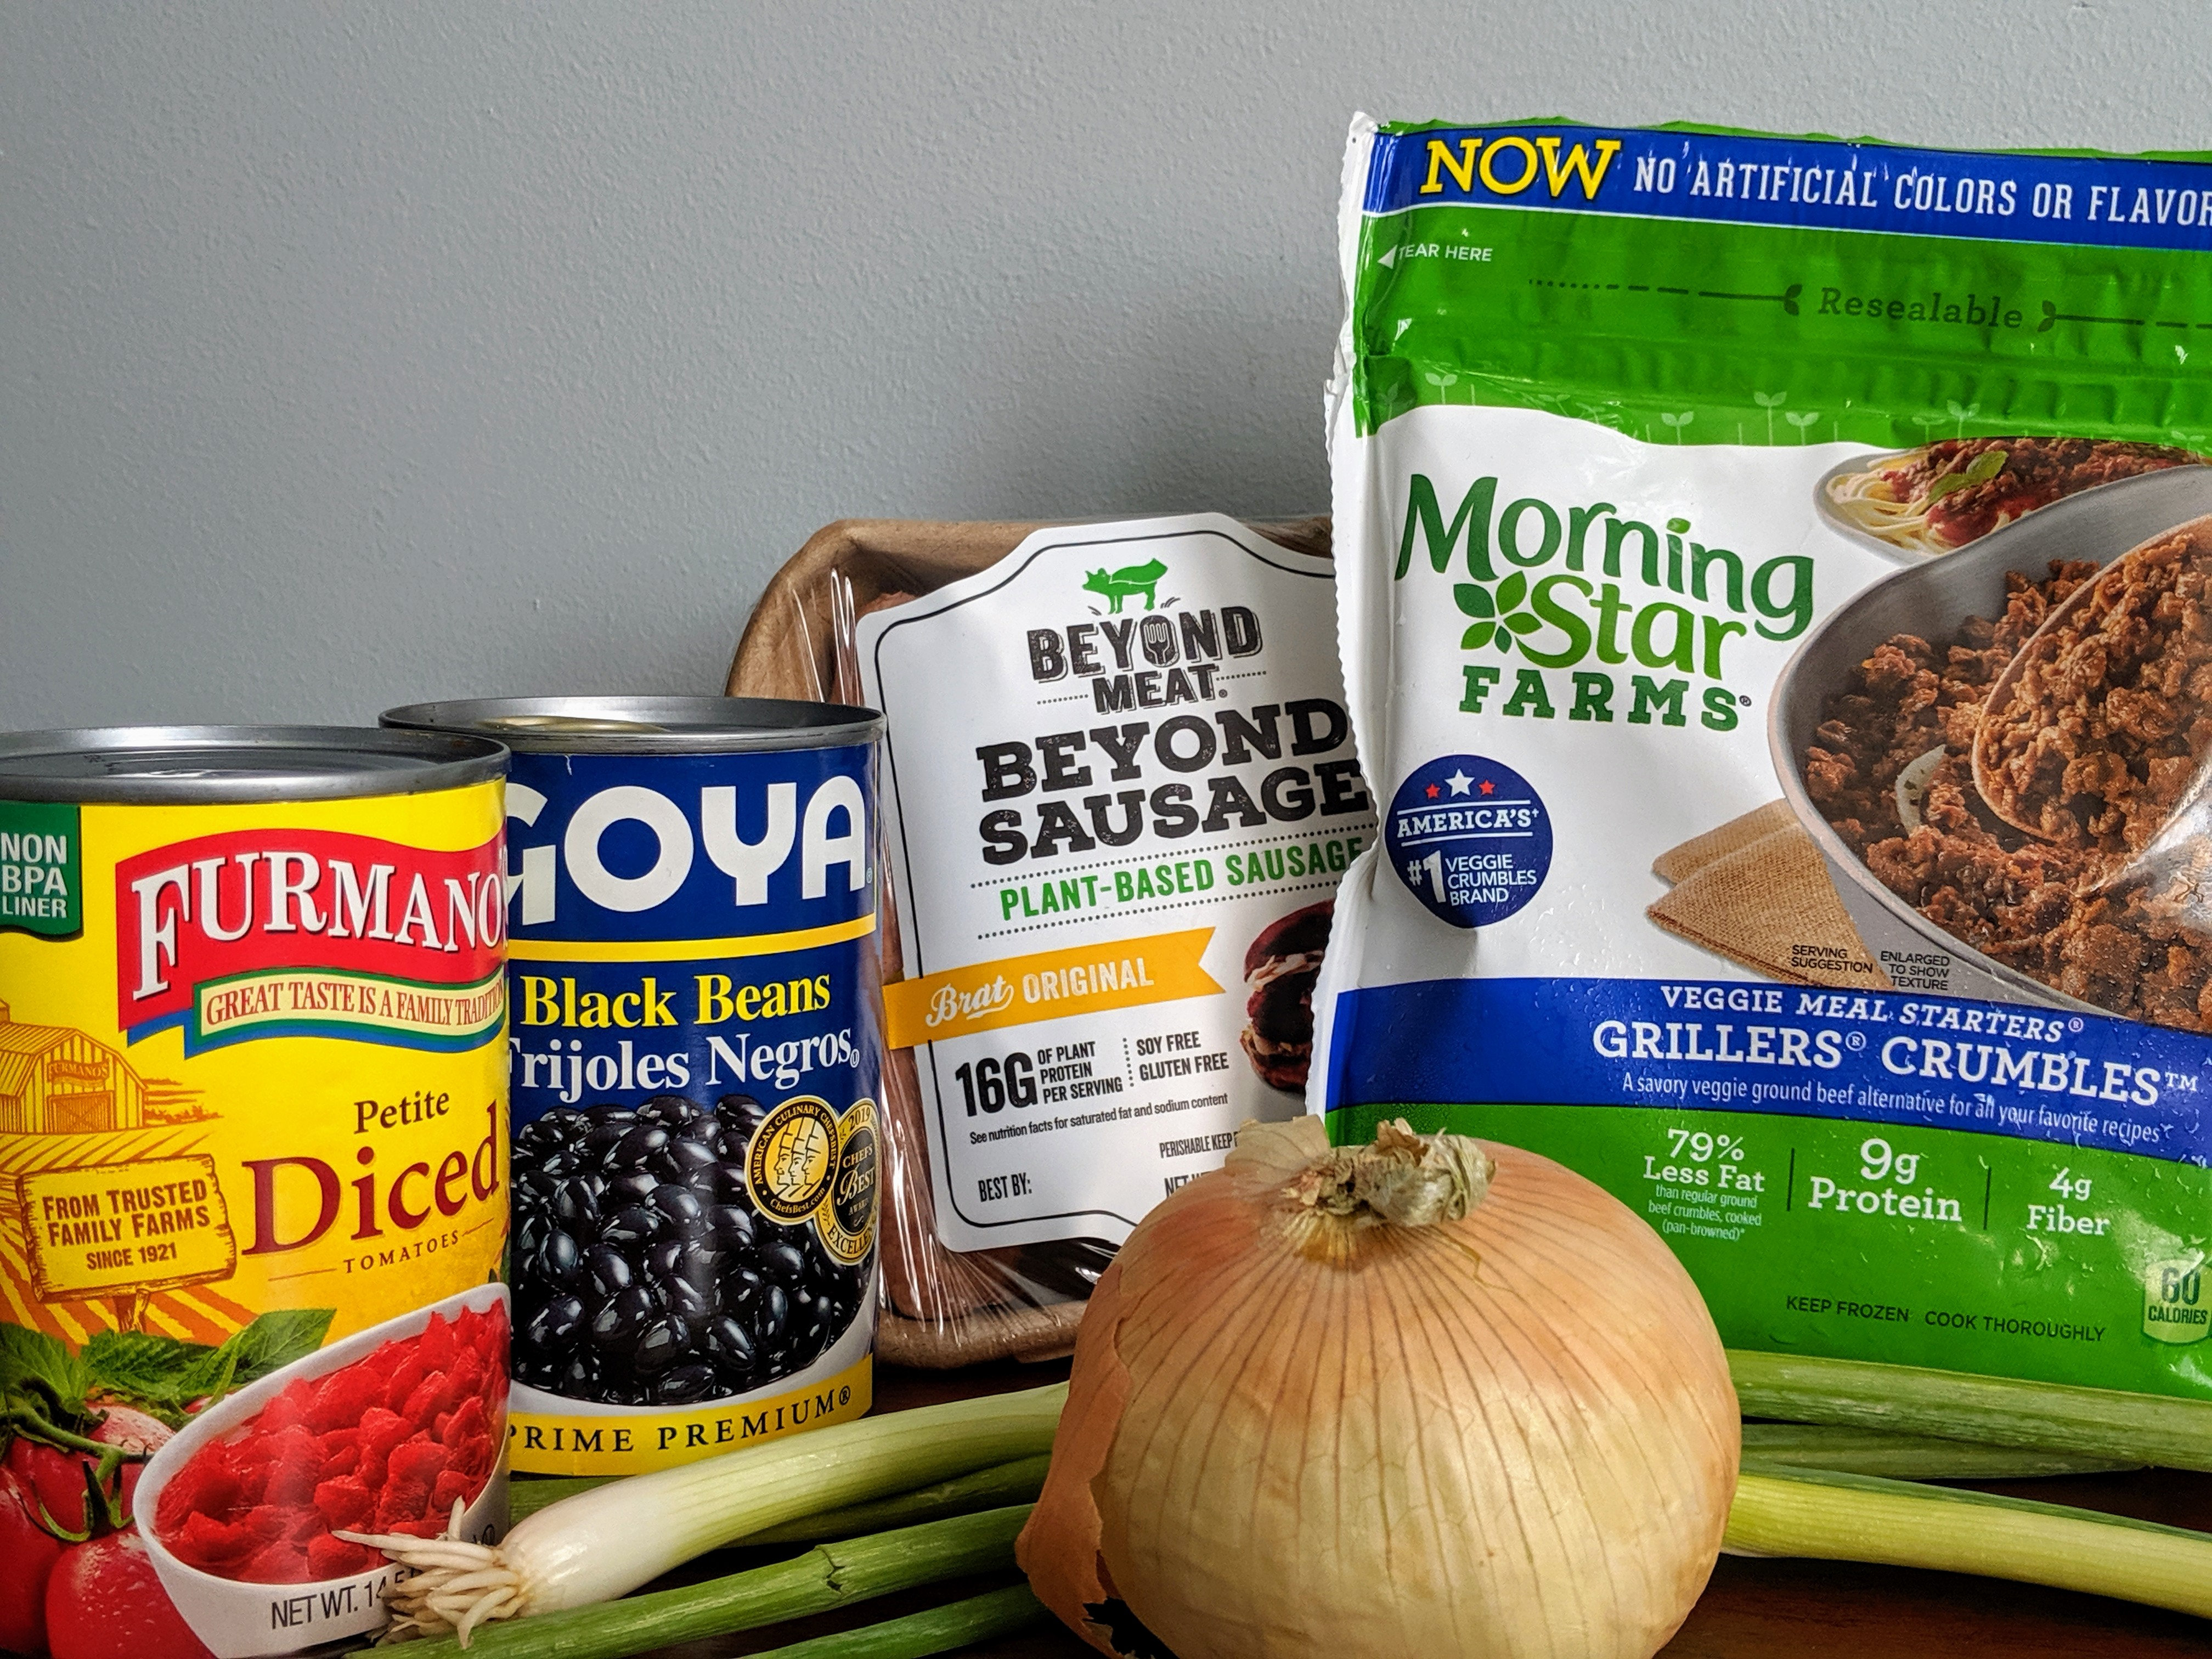 Ingredients for Beyond Sausage Chili Cheese Dogs. Morning star farms grillers crumbles, goya black beans, beyond meat beyond sausage.